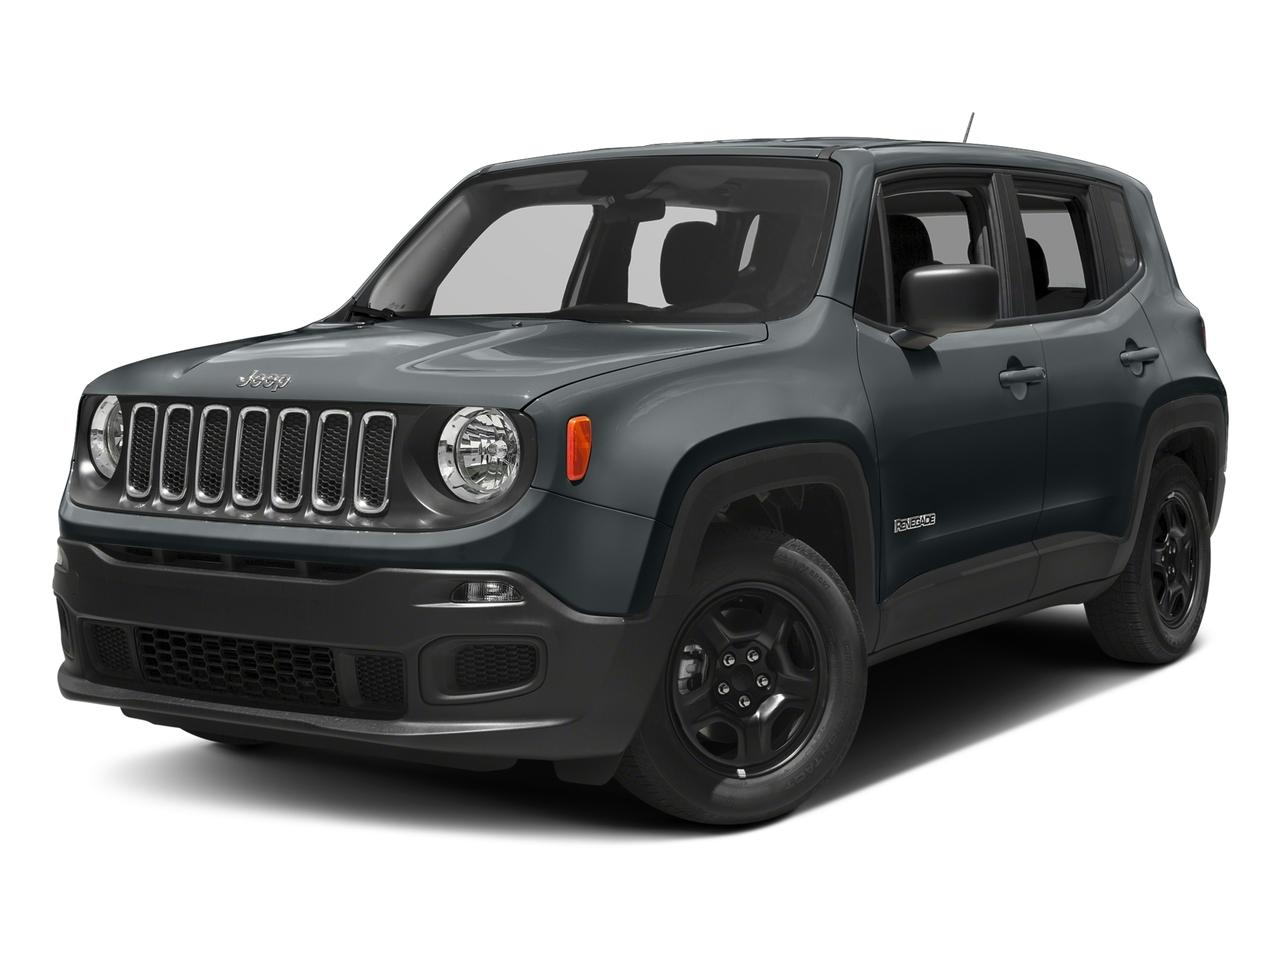 2017 Jeep Renegade Vehicle Photo in Owensboro, KY 42302